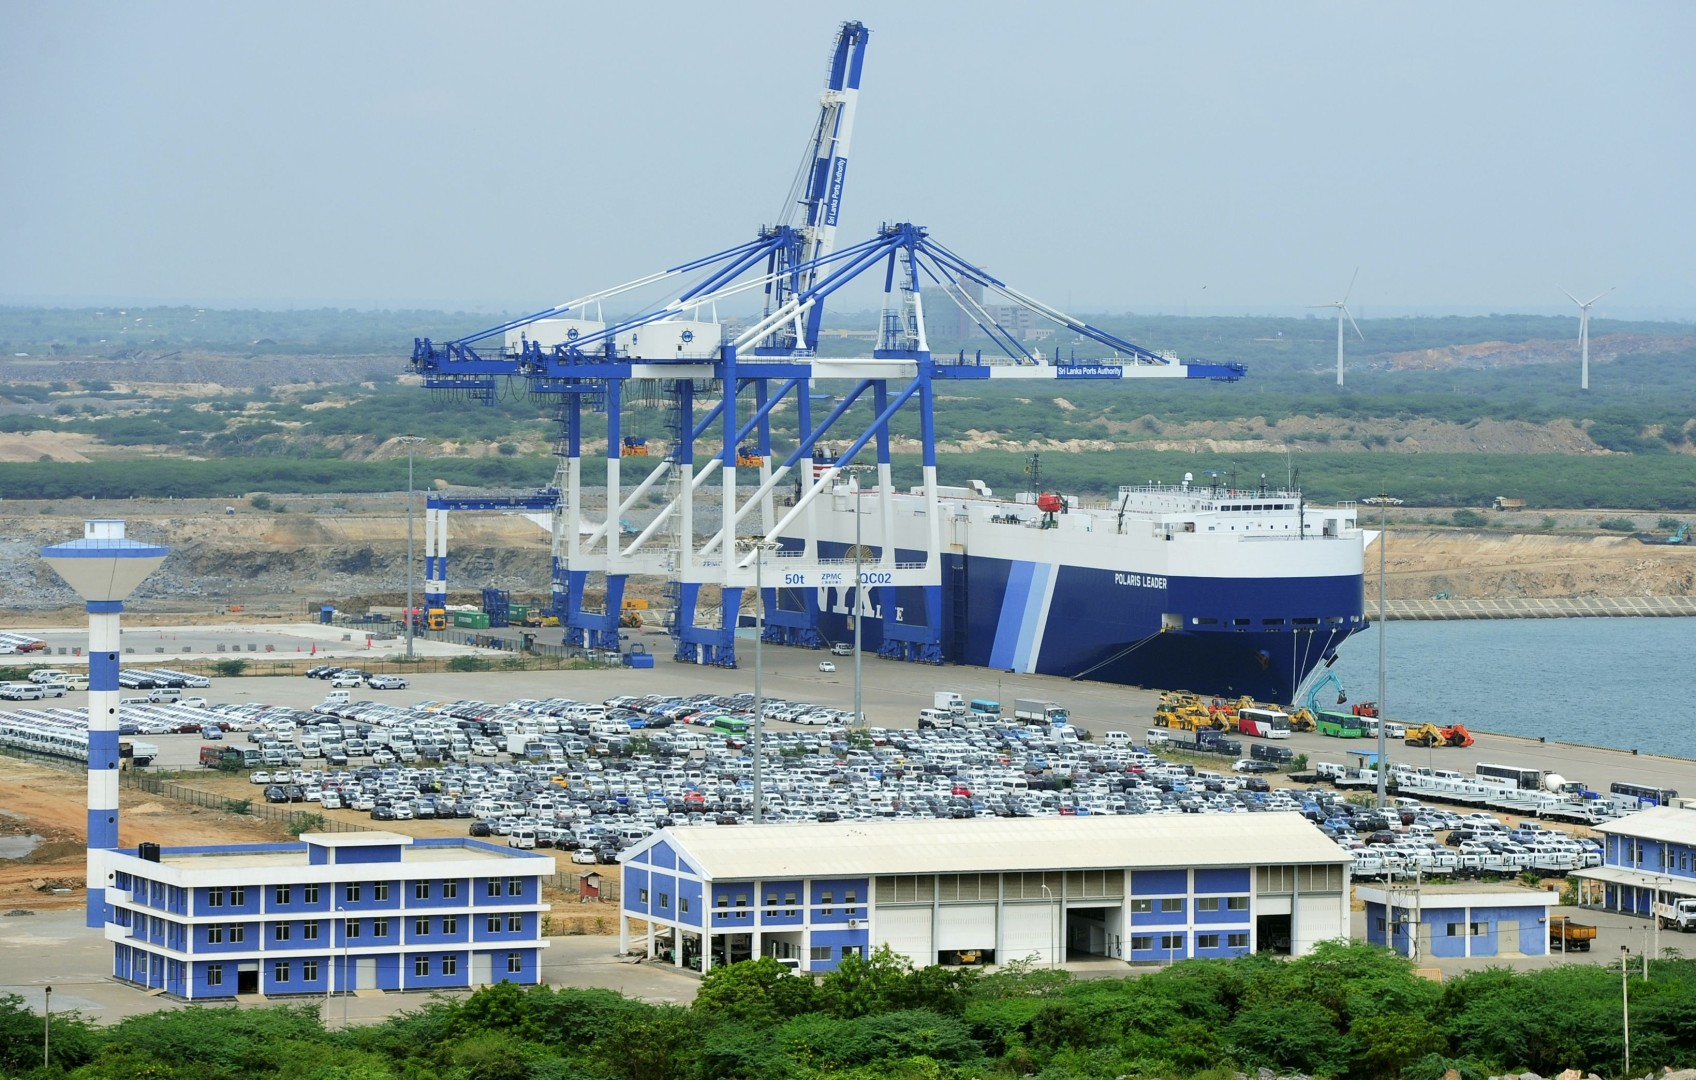 Sri Lanka hands over running of Hambantota port to Chinese